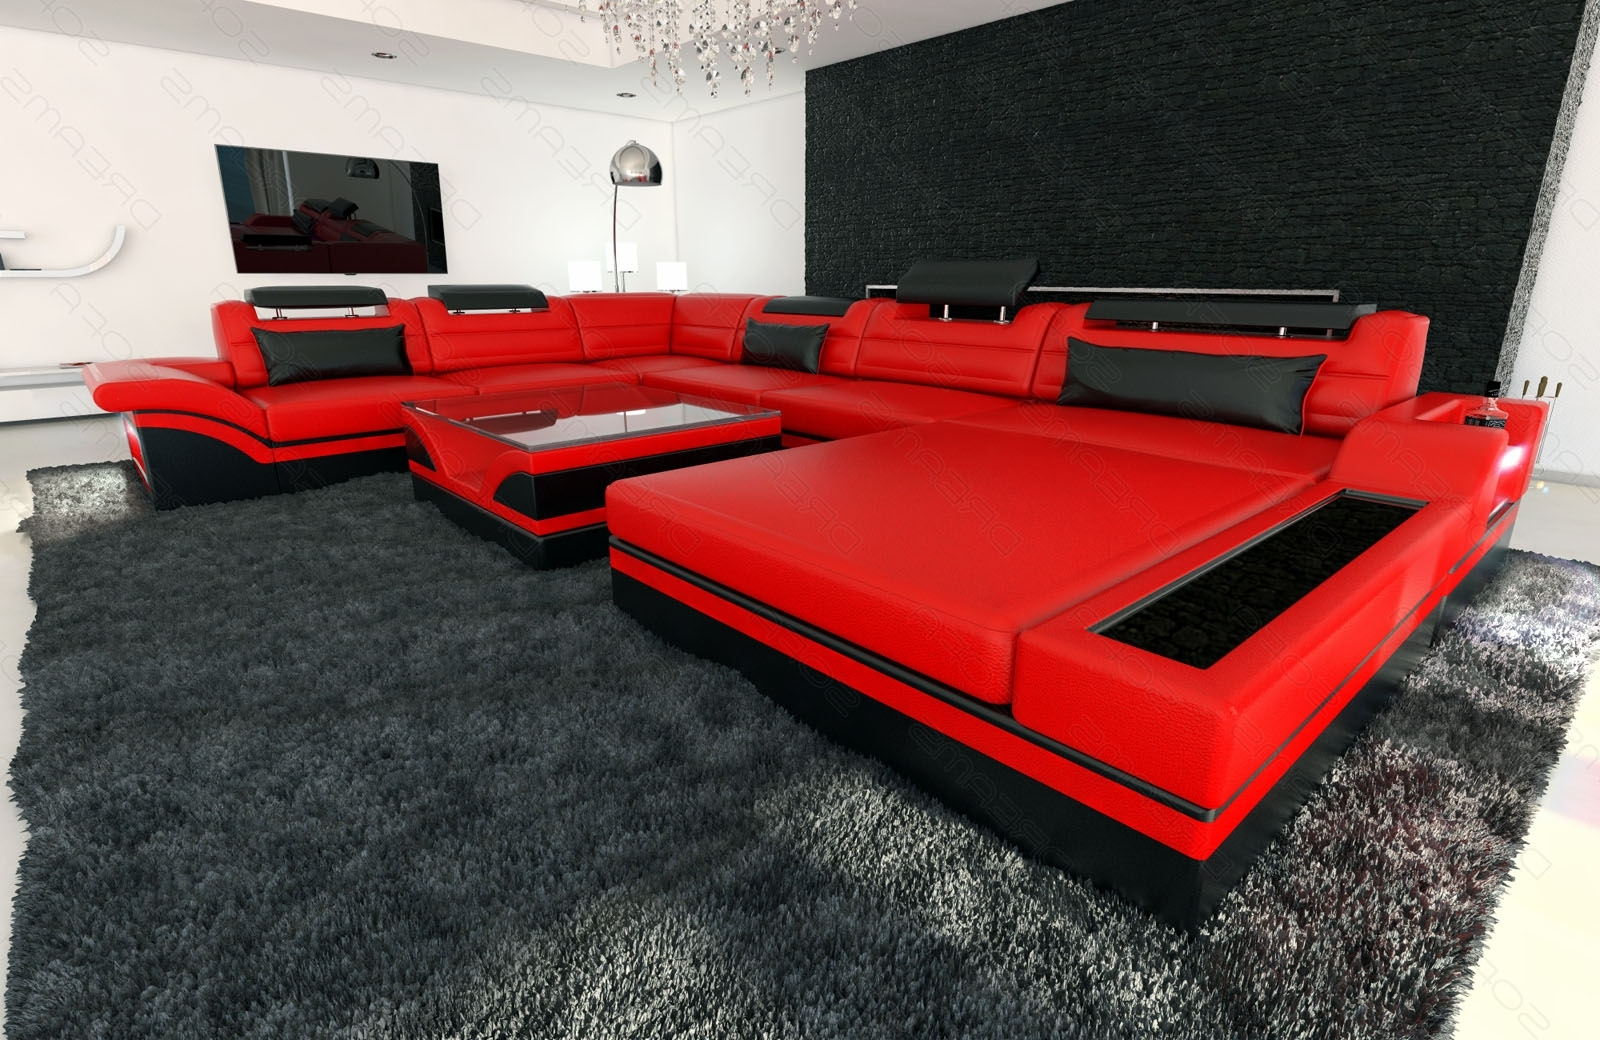 Red Black Sectional Sofas Within Well Known Design Sectional Sofa Mezzo Xxl With Led Lights Red Black (View 14 of 20)